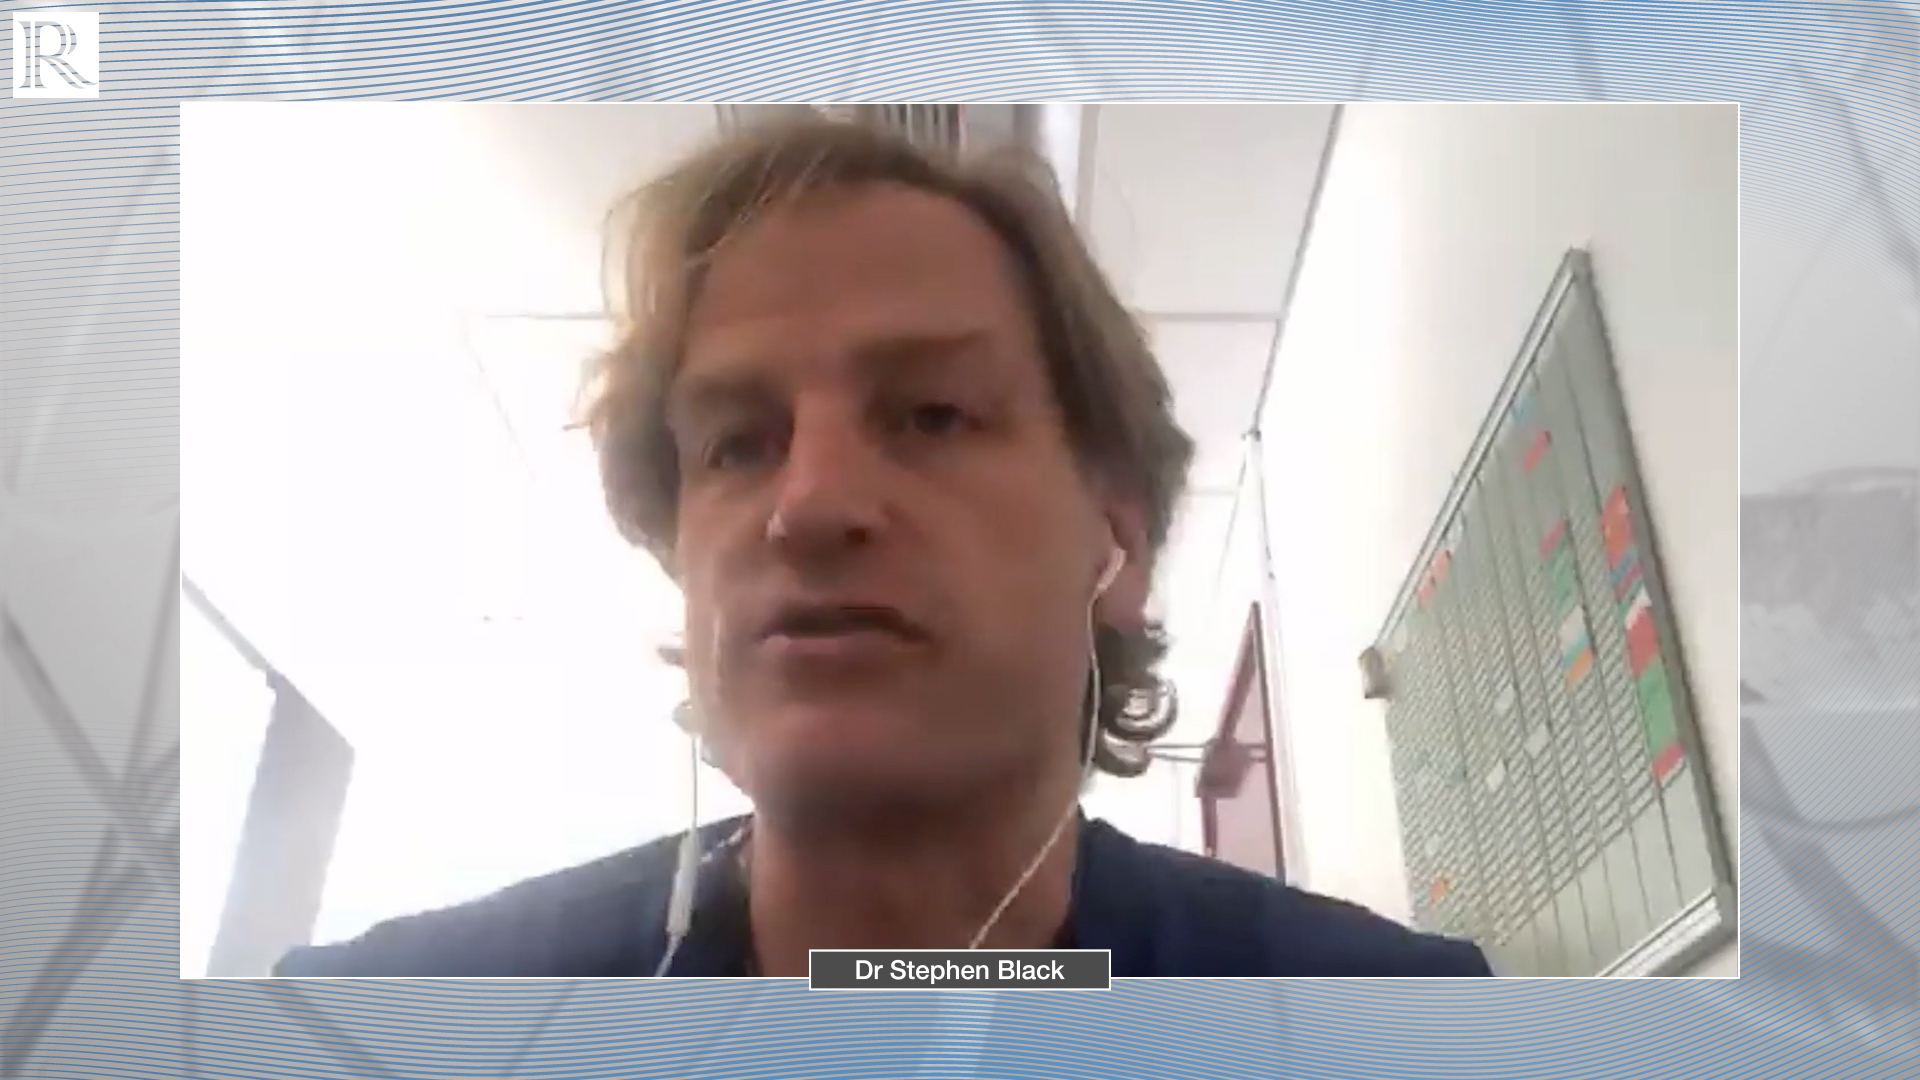 Twelve-month results from the ABRE study — Dr Stephen Black